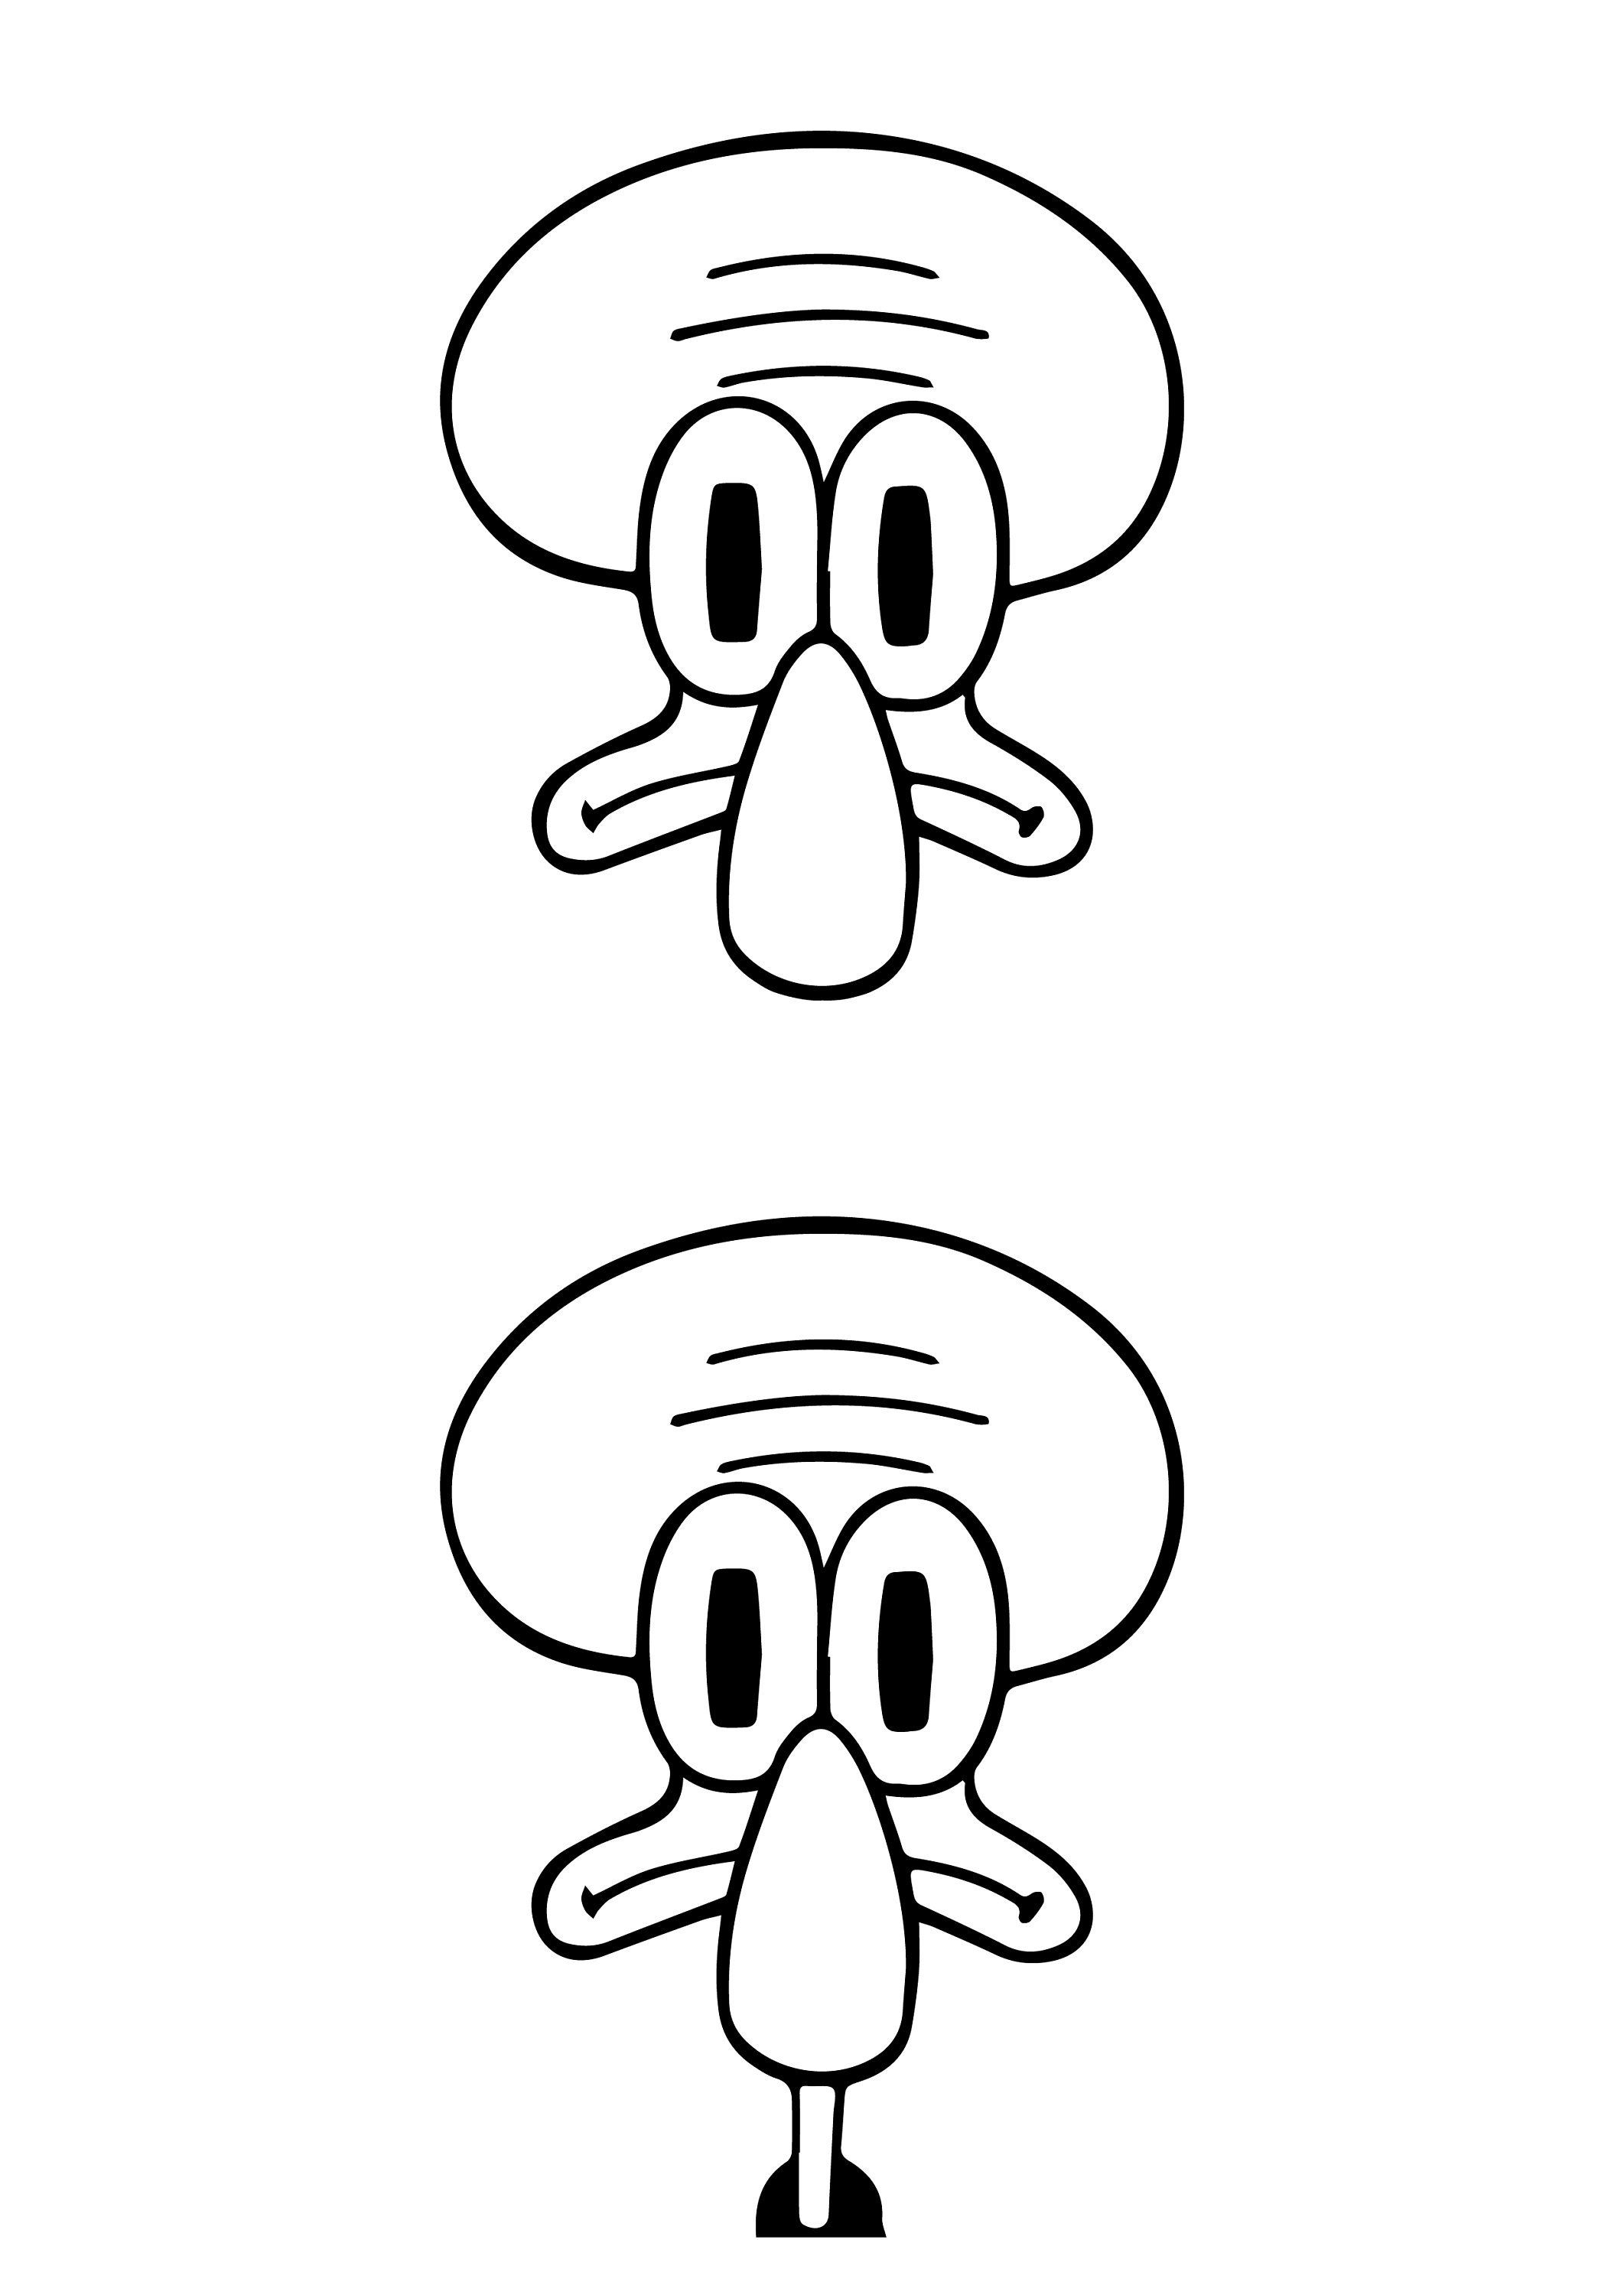 Squidward SVG Spongebob Squarepants SVG vector artwork